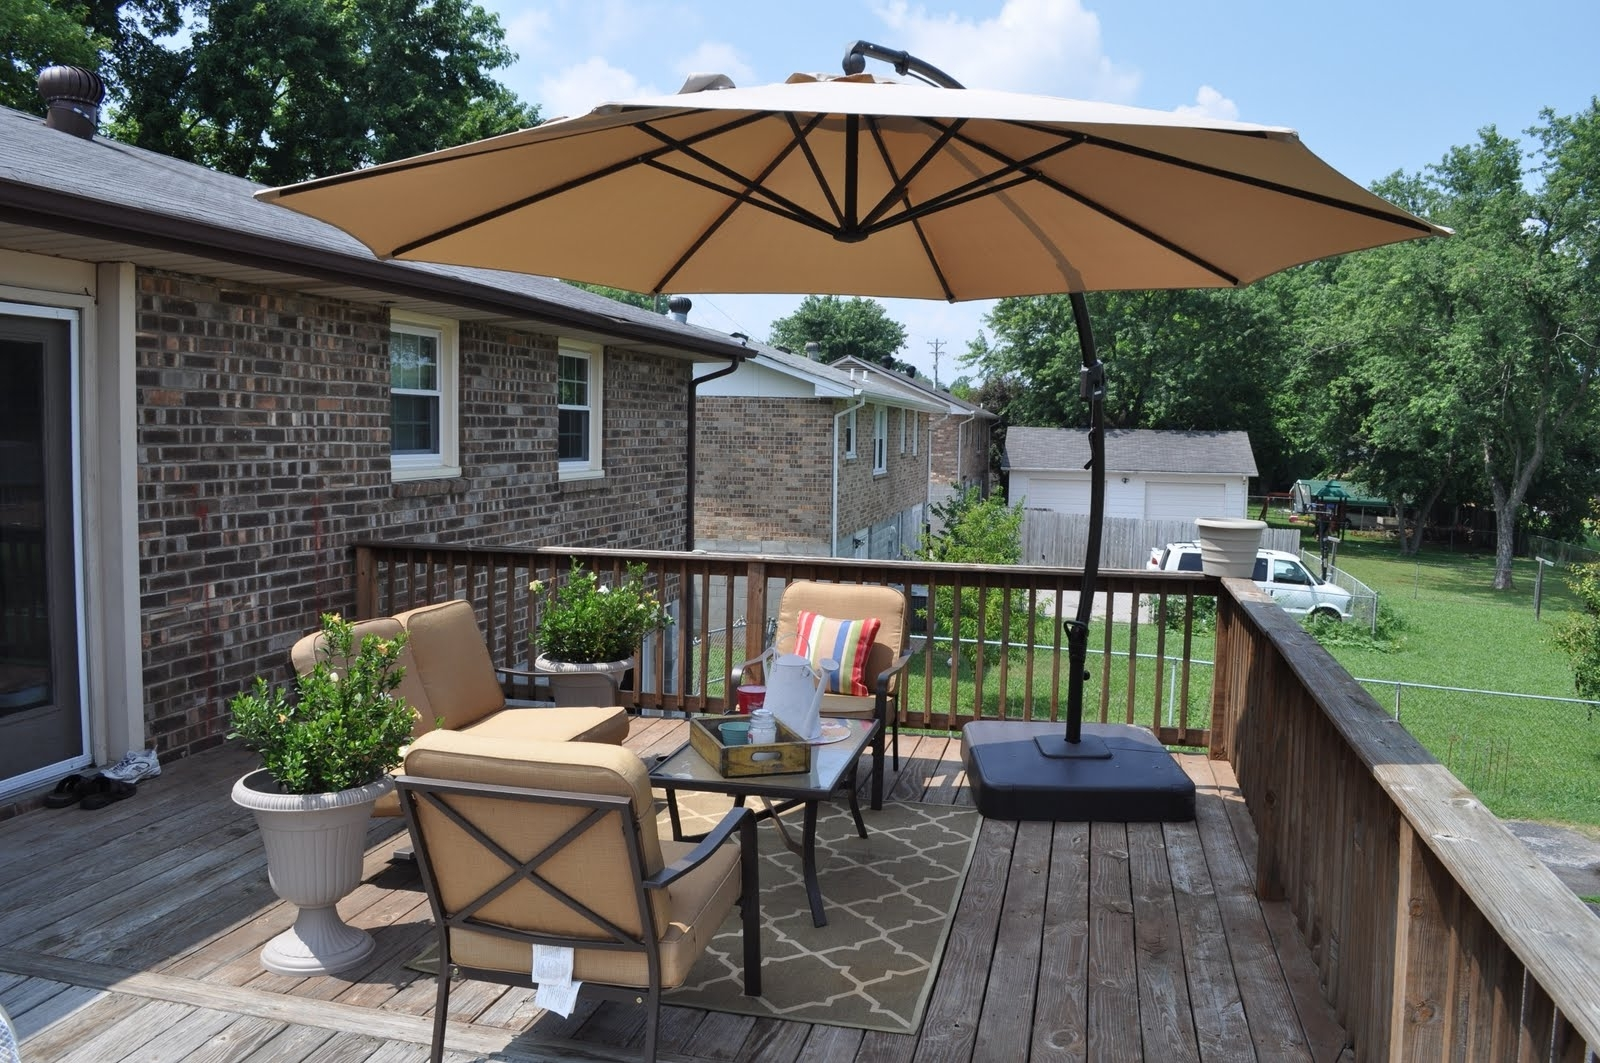 Most Recently Released Patio: Awesome Umbrella Patio Set Frontgate Outdoor Furniture Pertaining To Patio Sets With Umbrellas (View 16 of 20)